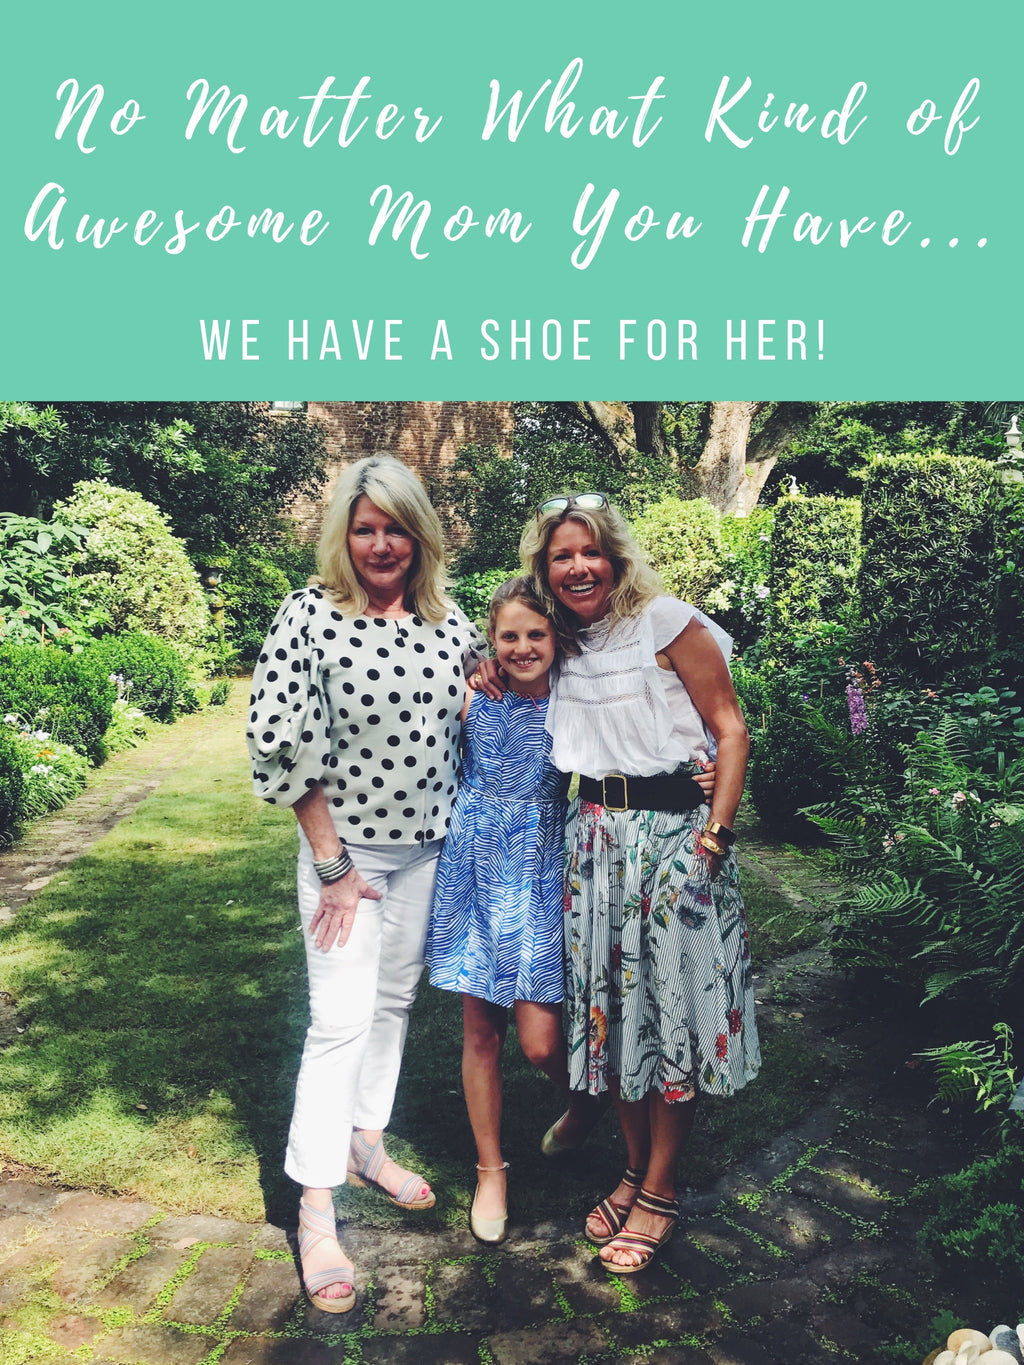 Why Buy Mom Flowers When You Can Buy Her Shoes!